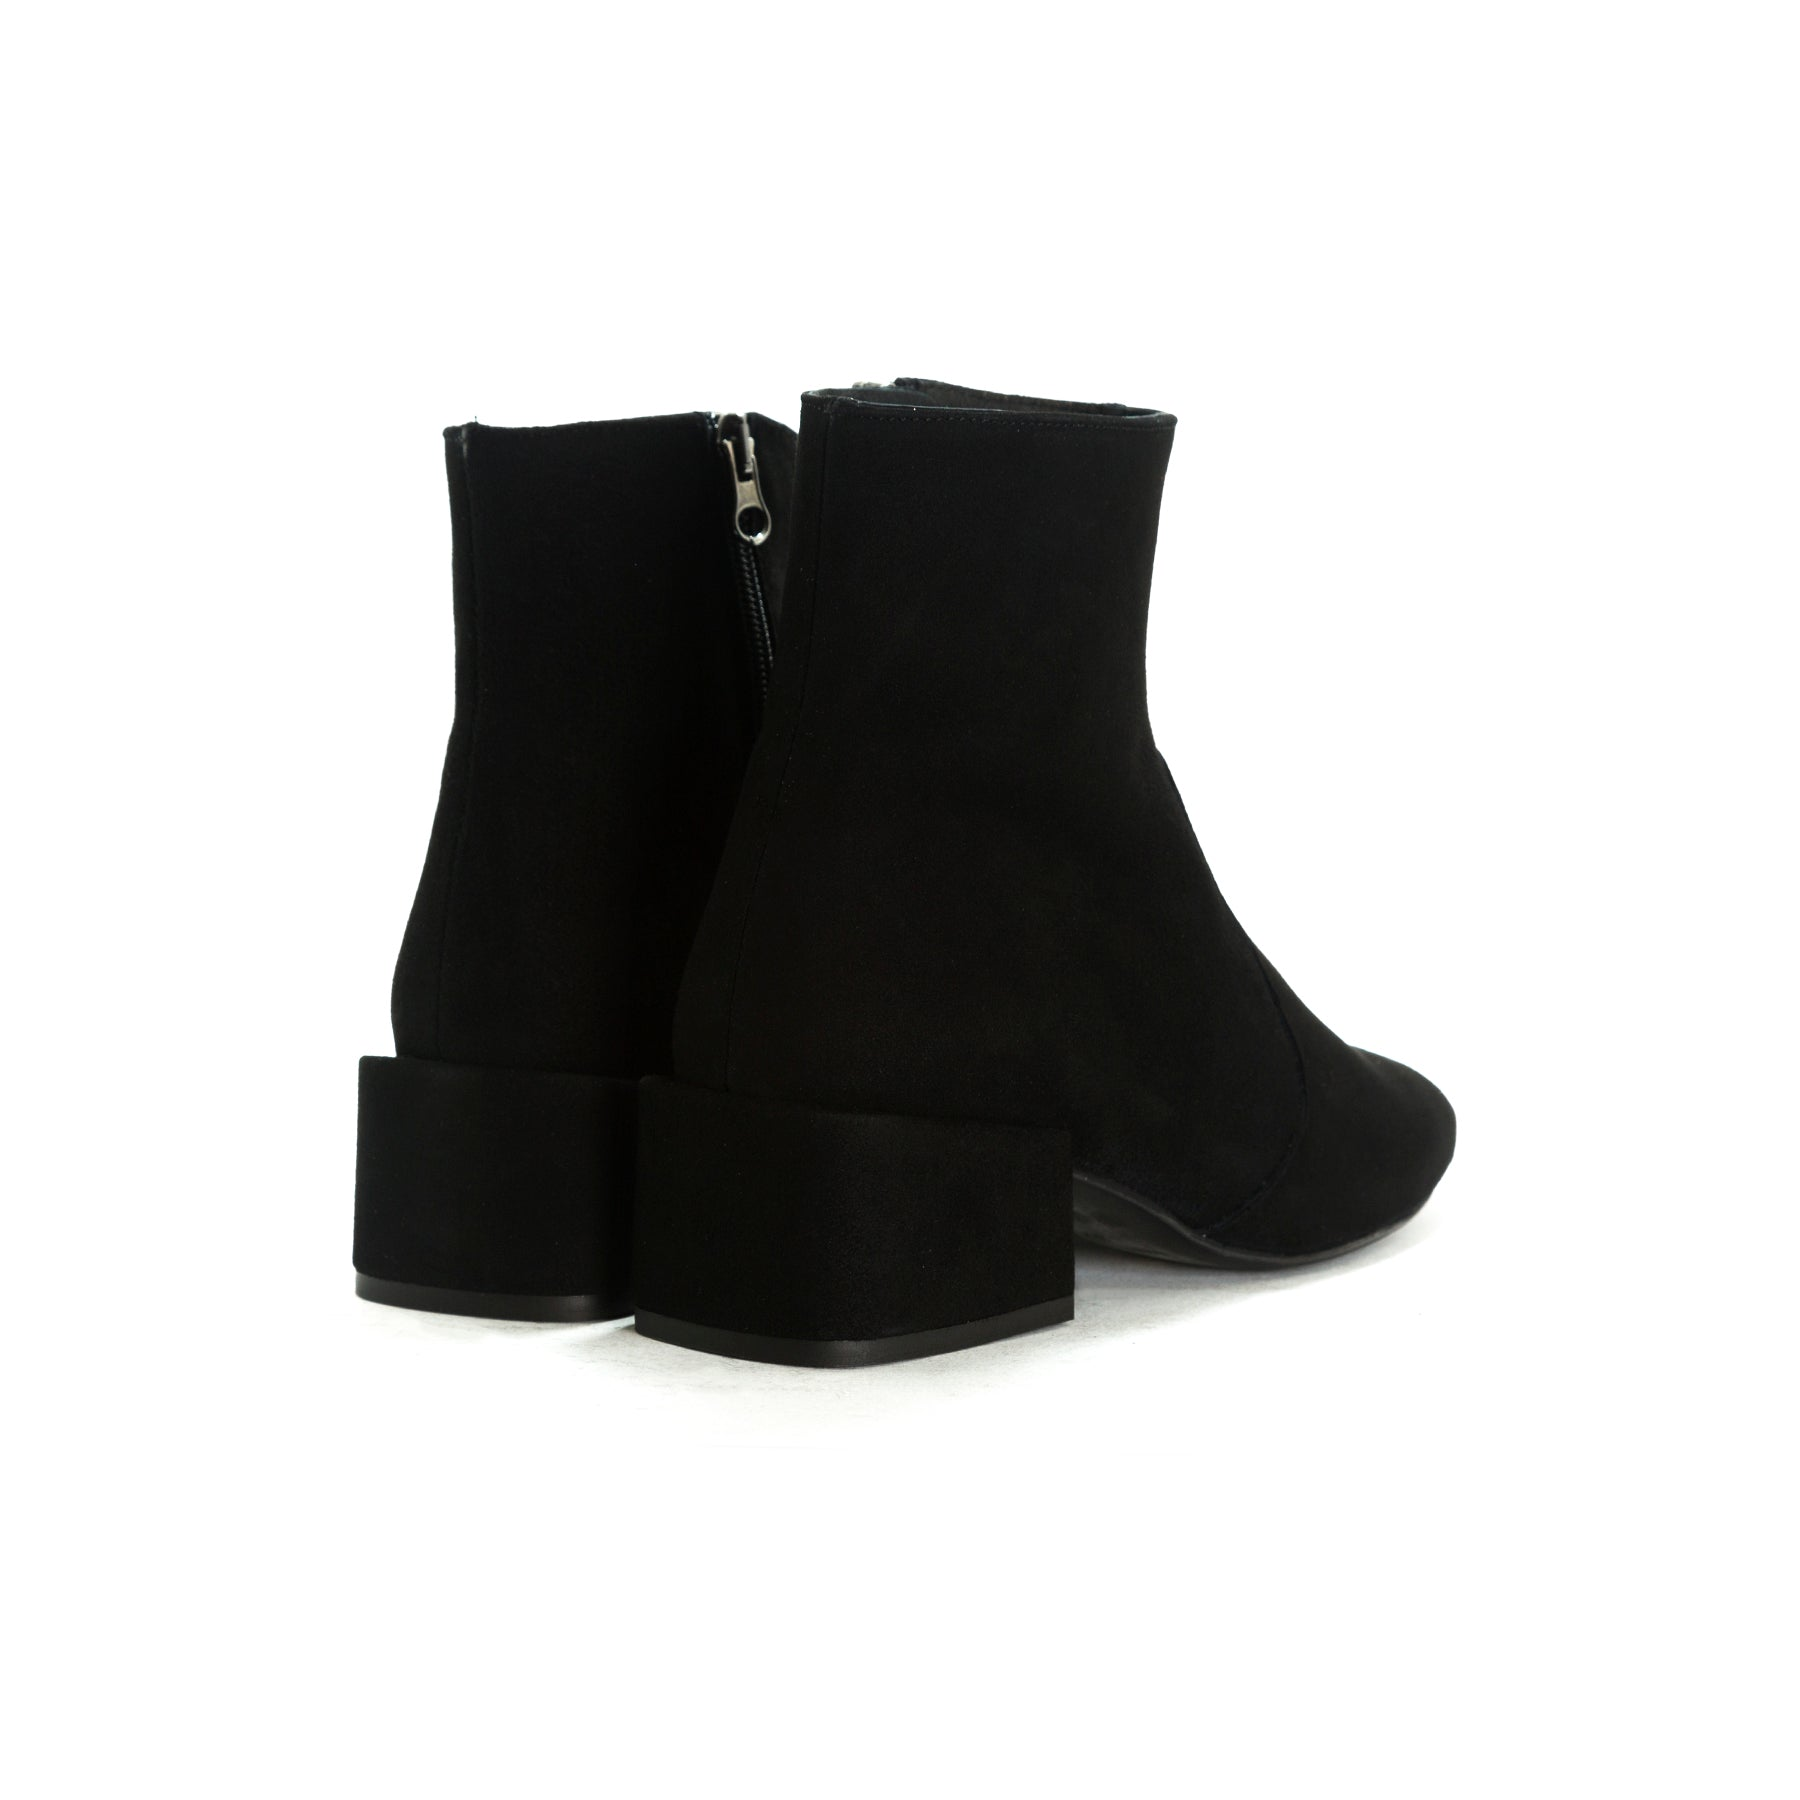 Thassos Black Suede Booties